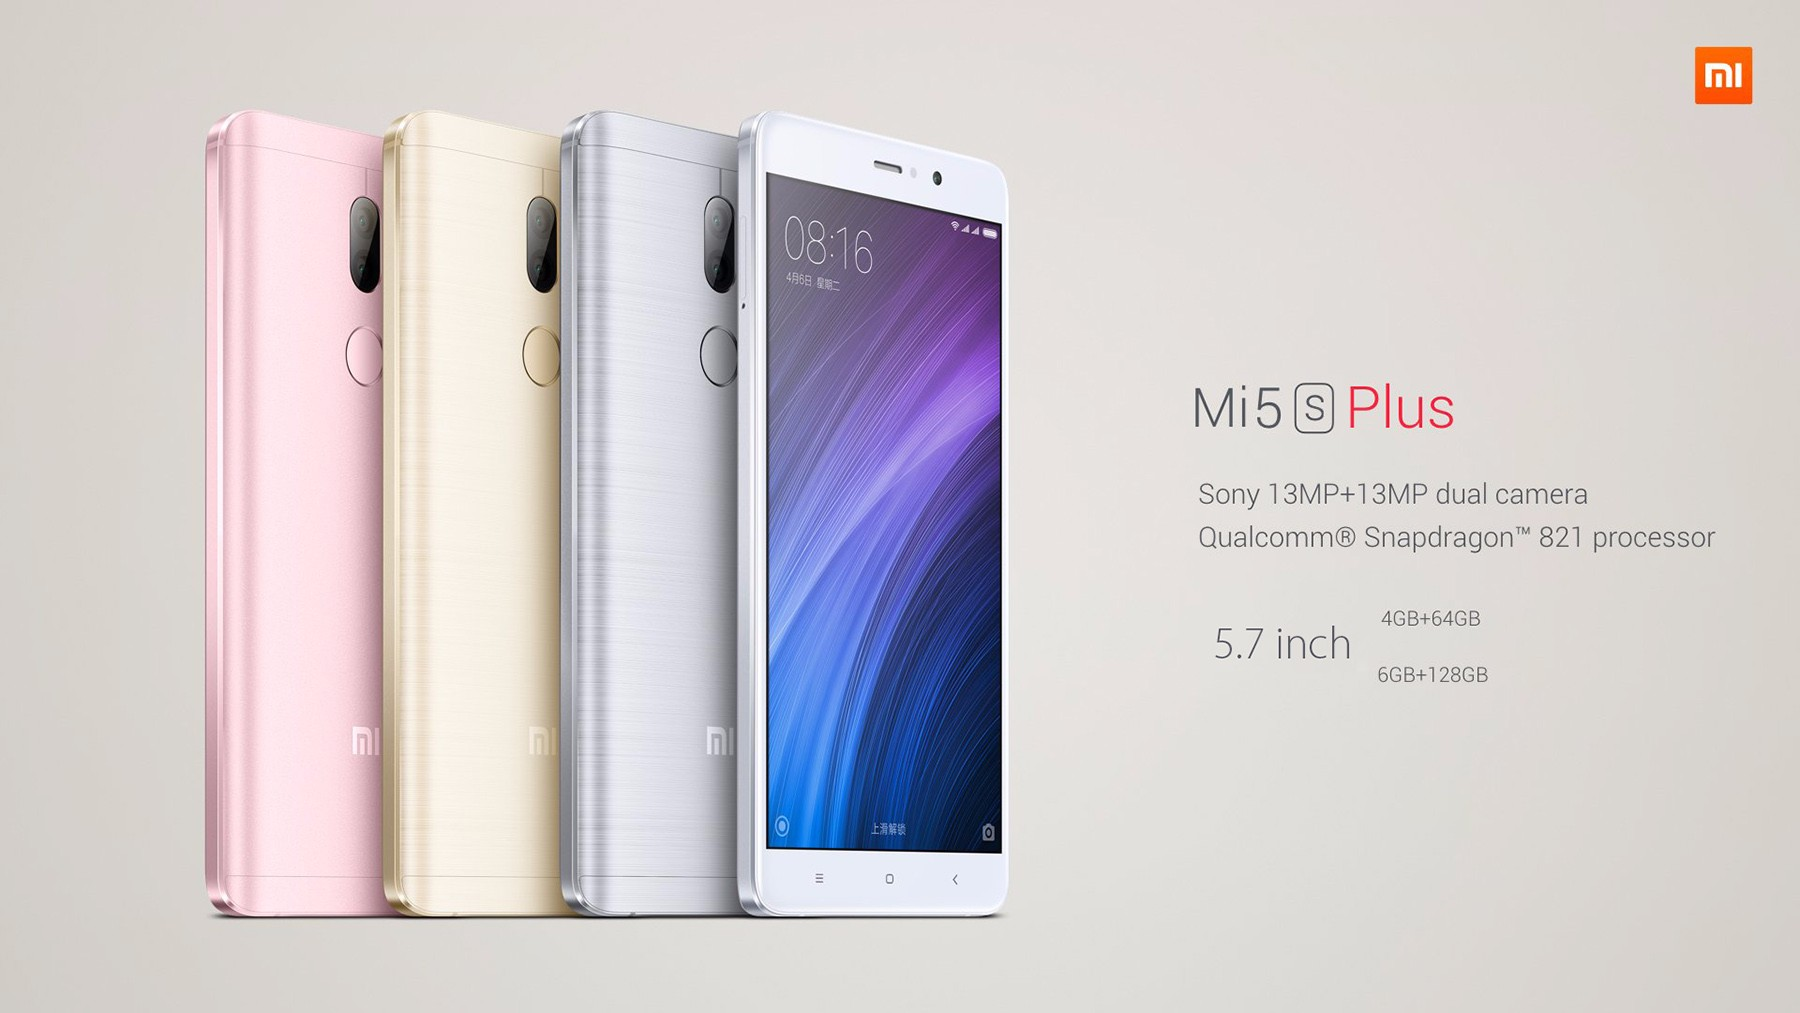 Xiaomi Mi5s Plus International Edition MIUI 8 5.7 inch 4G Phablet Snapdragon 821 Quad Core 2.35GHz 6GB RAM 128GB ROM Dual 13.0MP Rear Cameras Fingerprint Scanner NFC